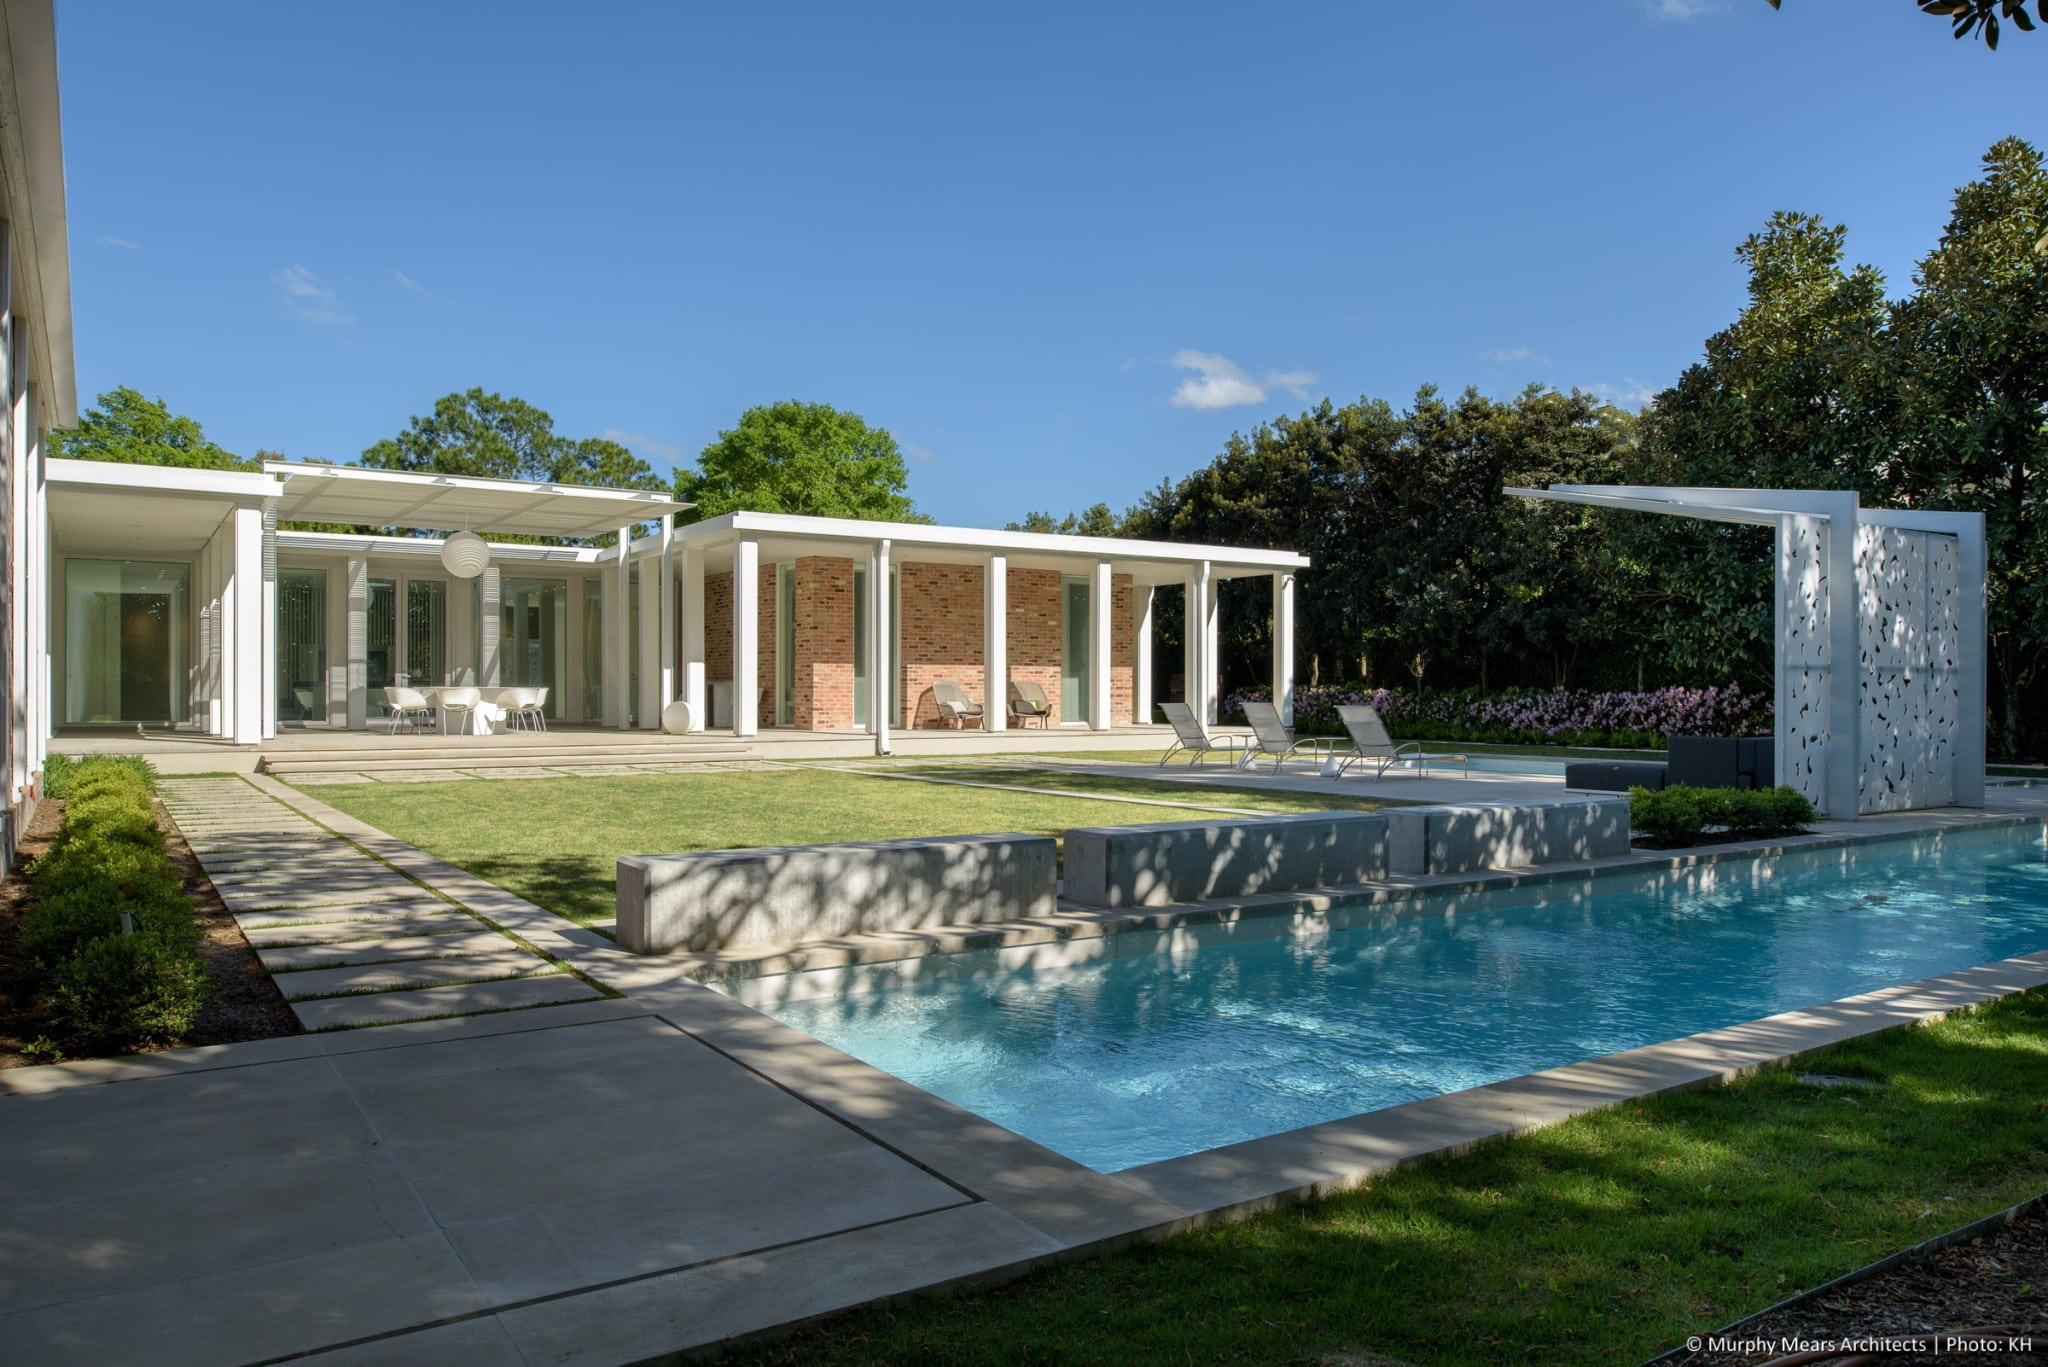 Limestone paths, concrete benches, a lap pool and a pool deck surround the axial central lawn.